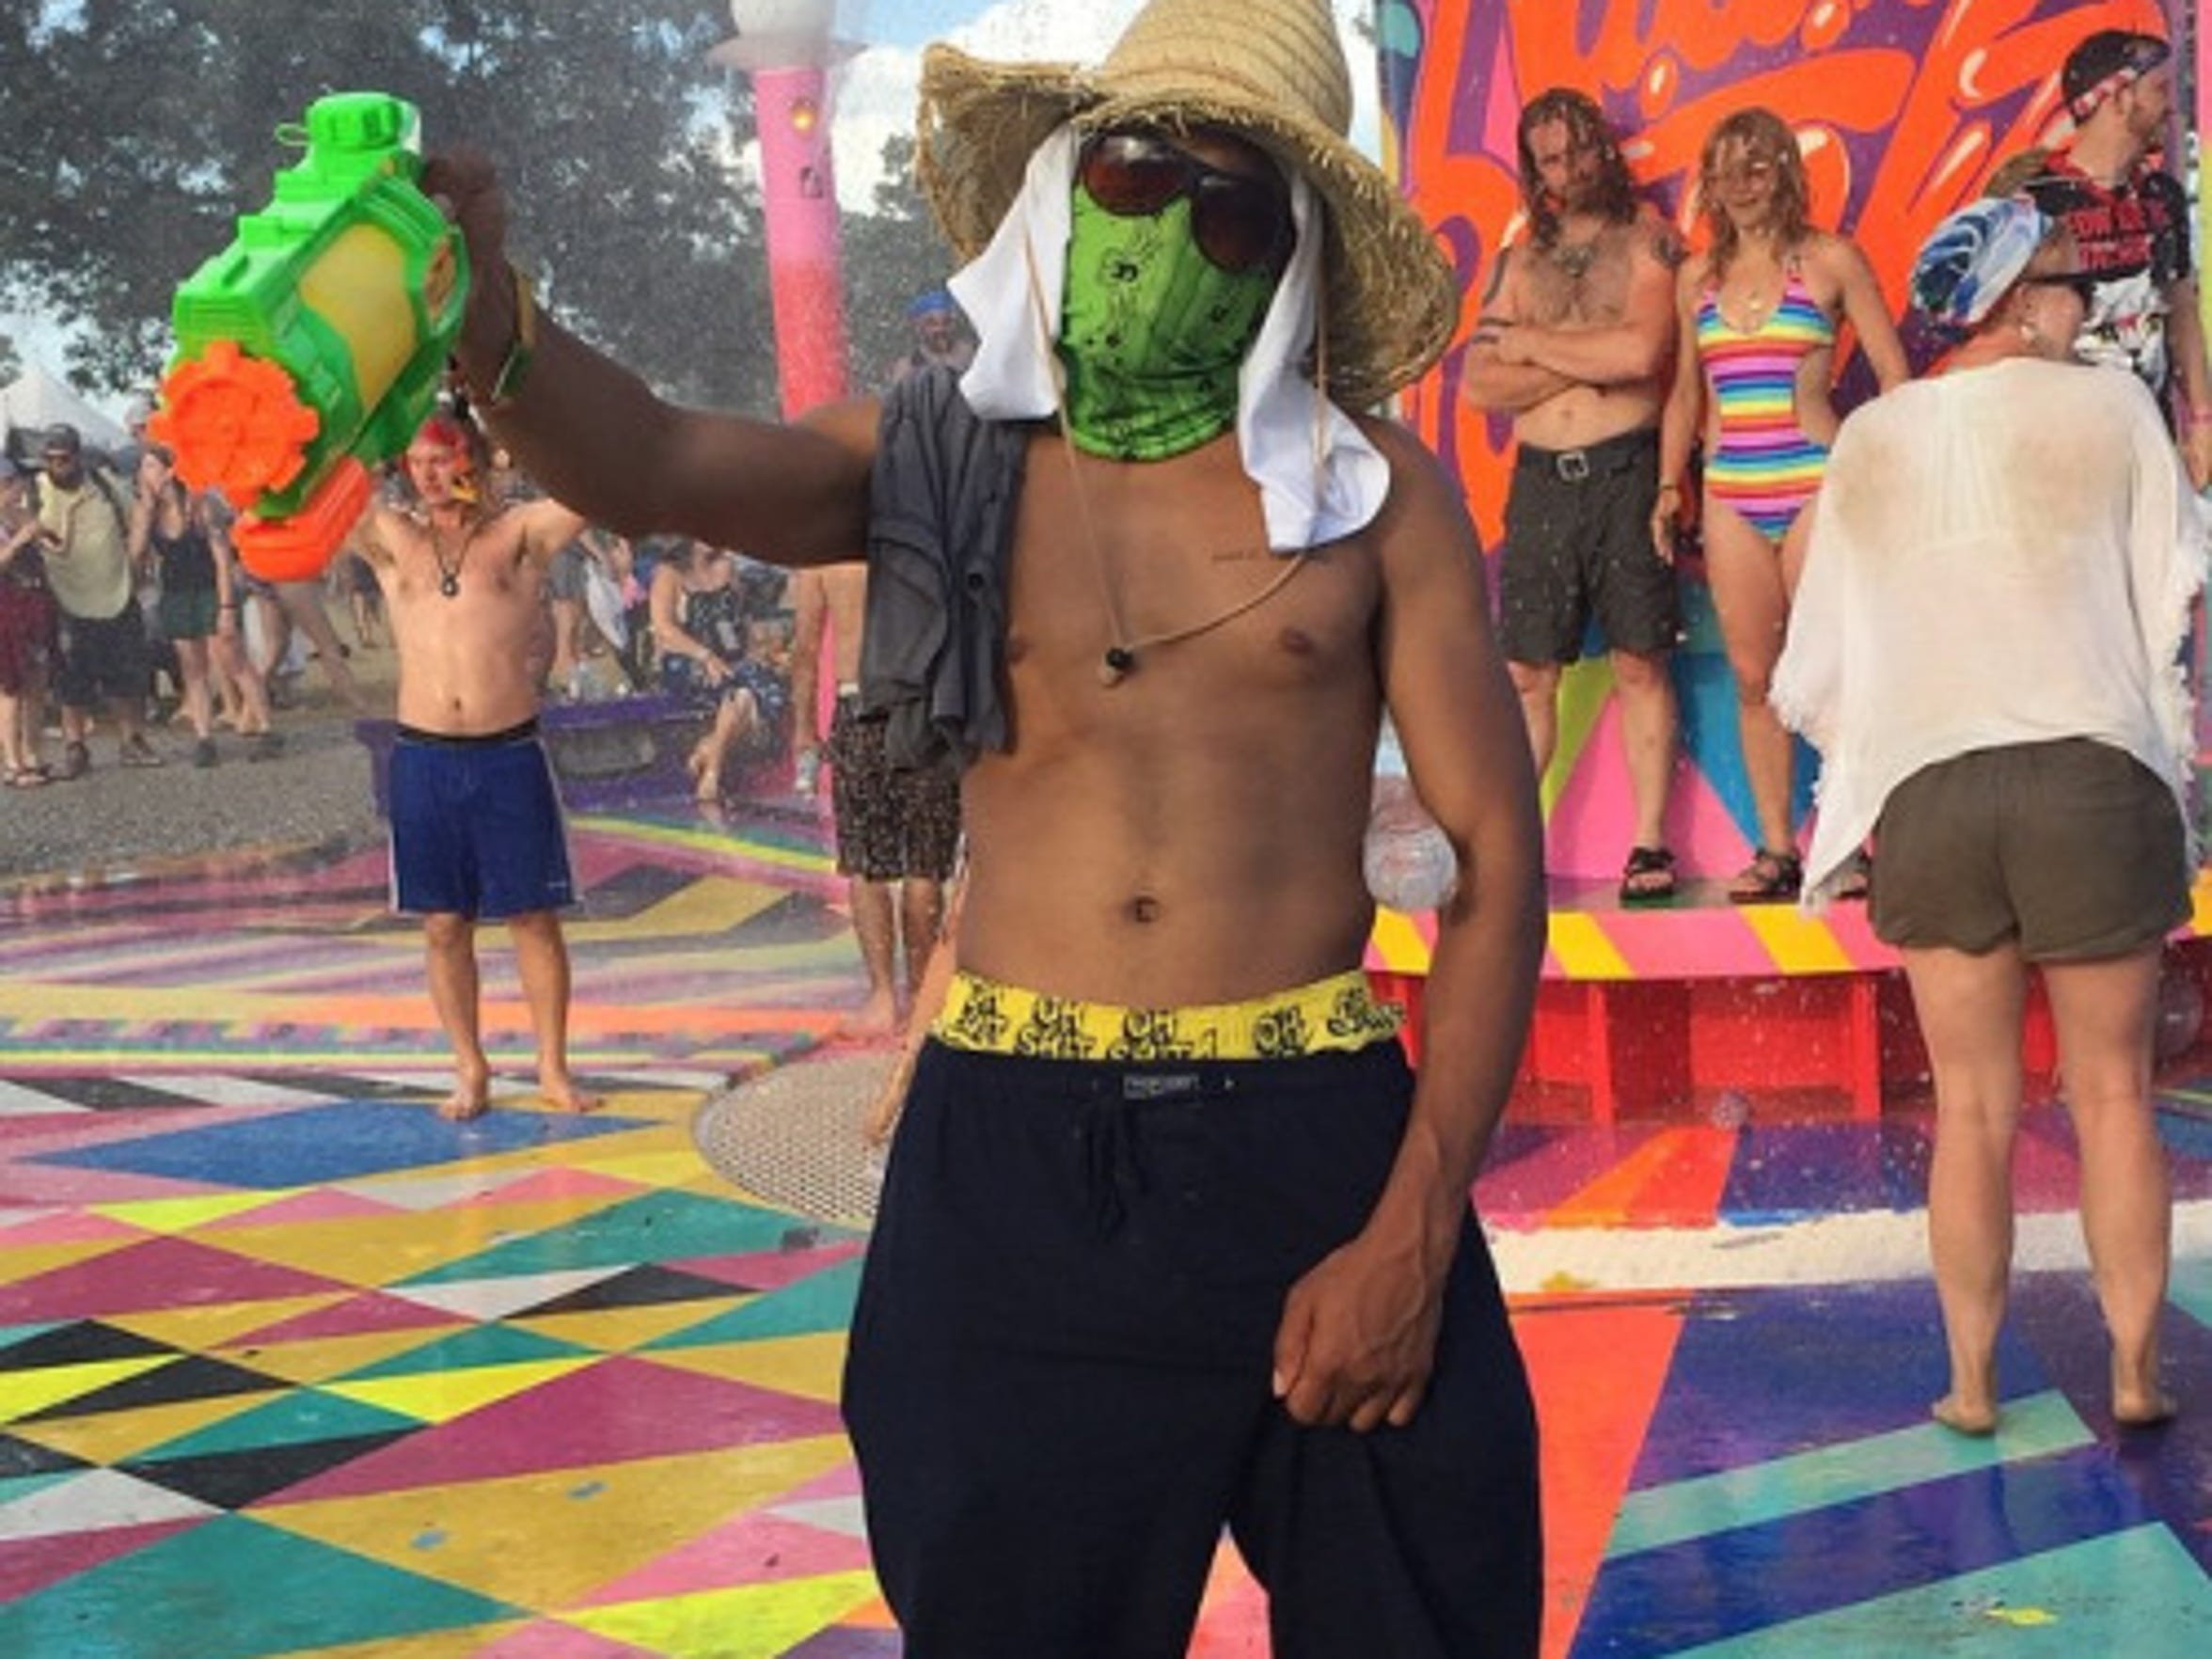 Chance the Rapper spent Bonnaroo 2015 undercover.